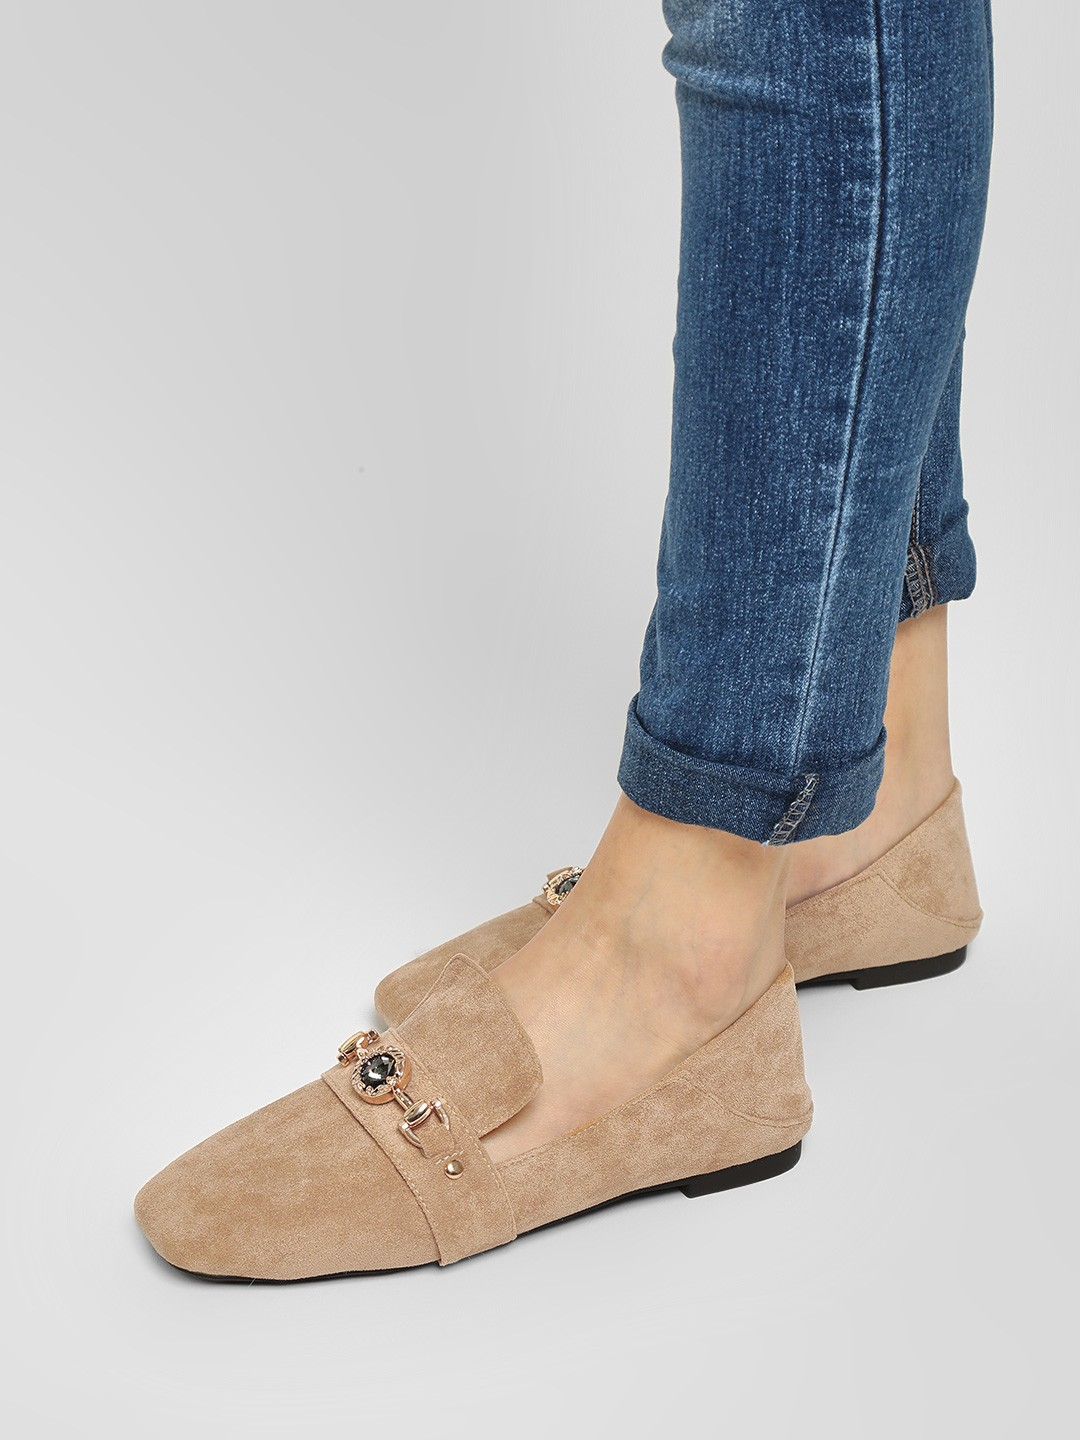 Sole Story Beige Embellished Strap Suede Finish Mules 1